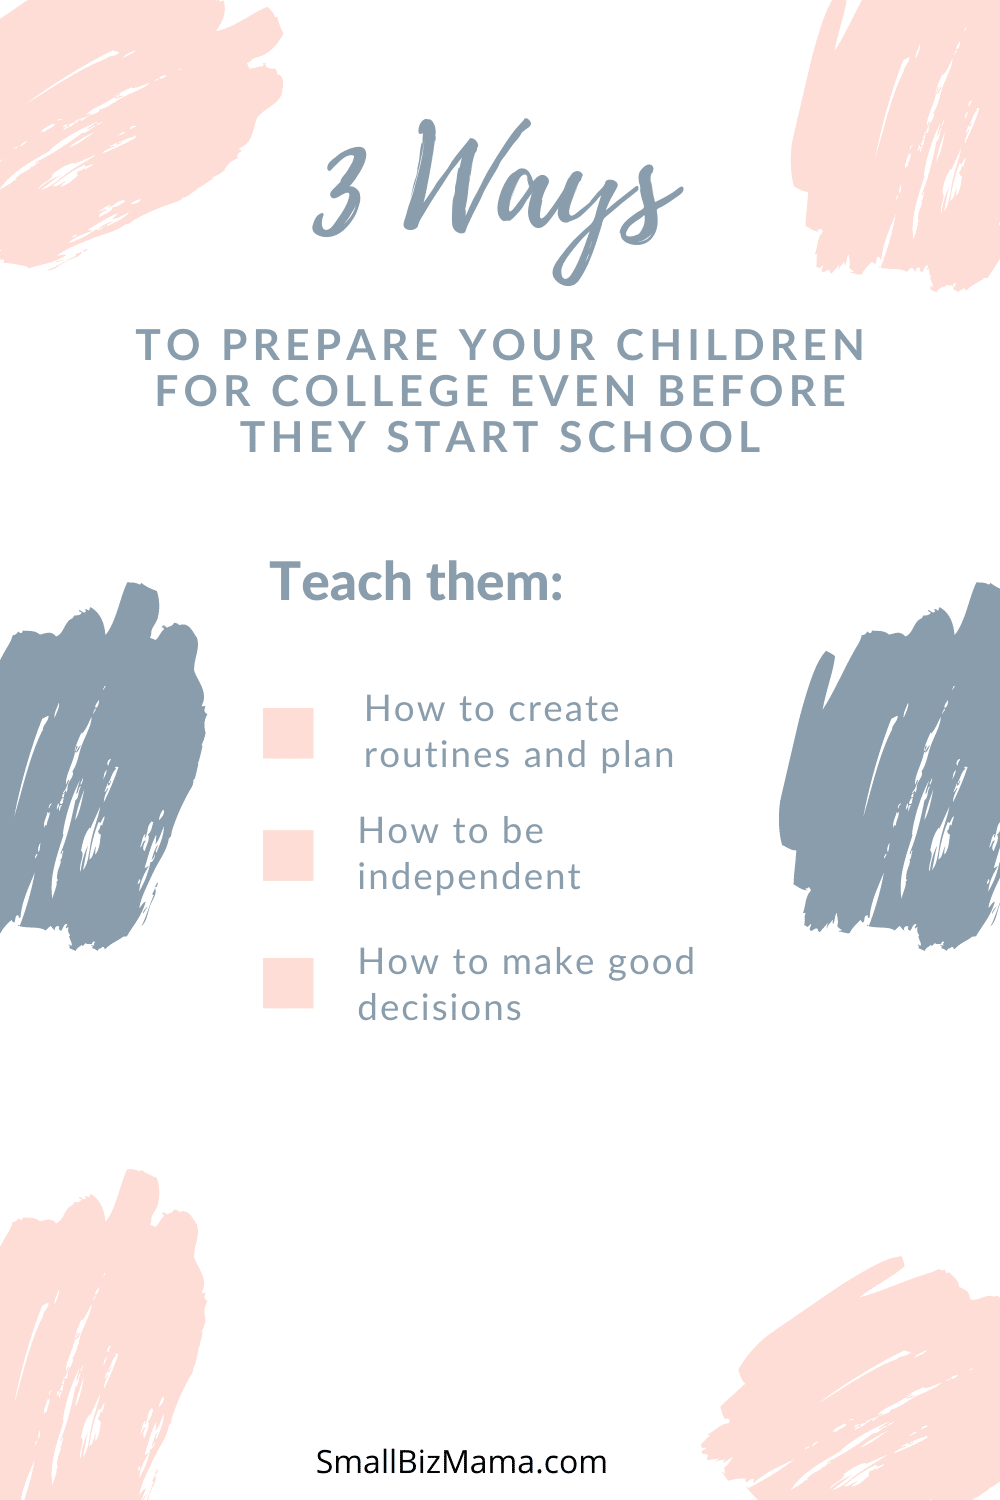 Three ways to prepare children for college